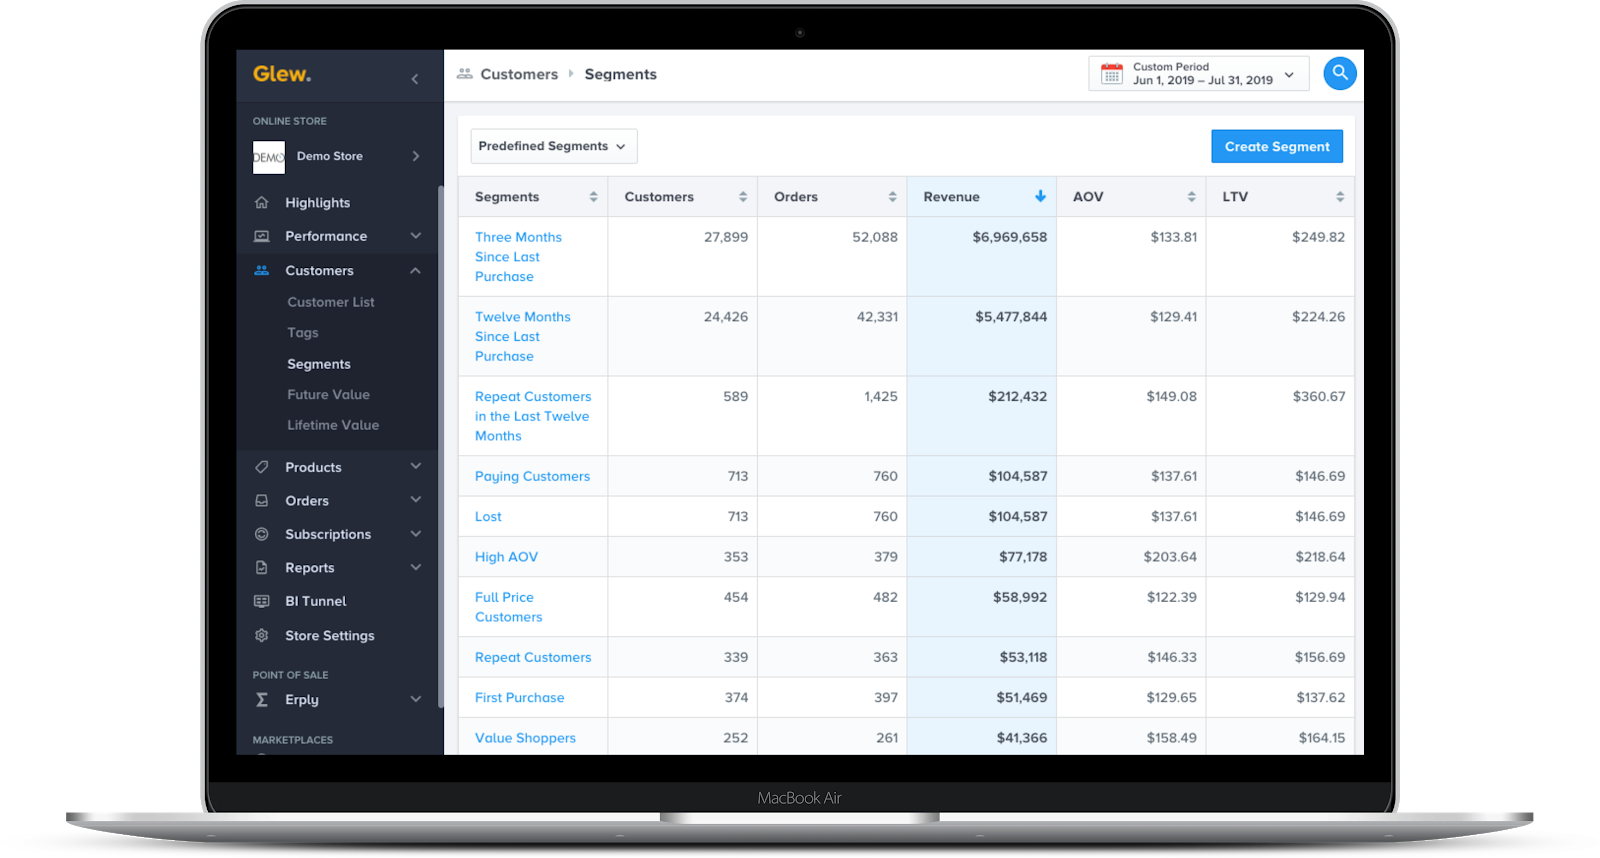 See it in Glew: Glew has 24+ pre-built customer segments and custom segmentation based on buying behavior and other data points. Push segments automatically to your ESP for targeted marketing